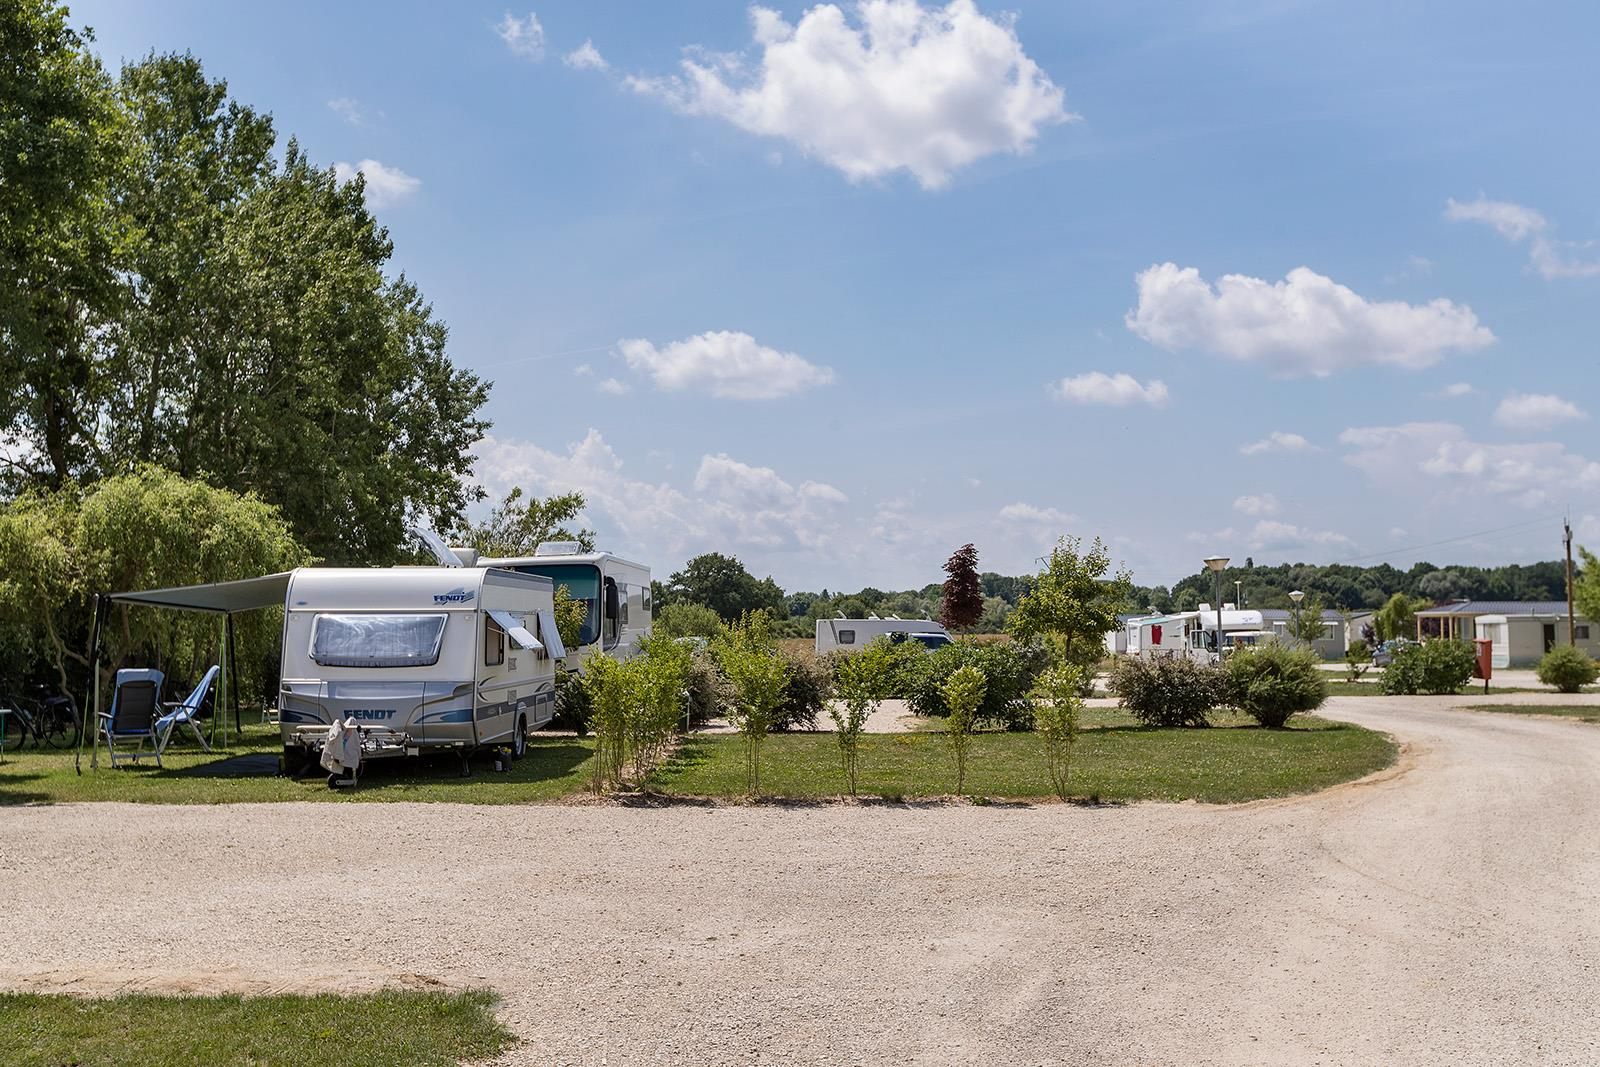 Emplacement - Emplacement Grand Confort Gravier/Herbe - Camping Le Lac d'Orient